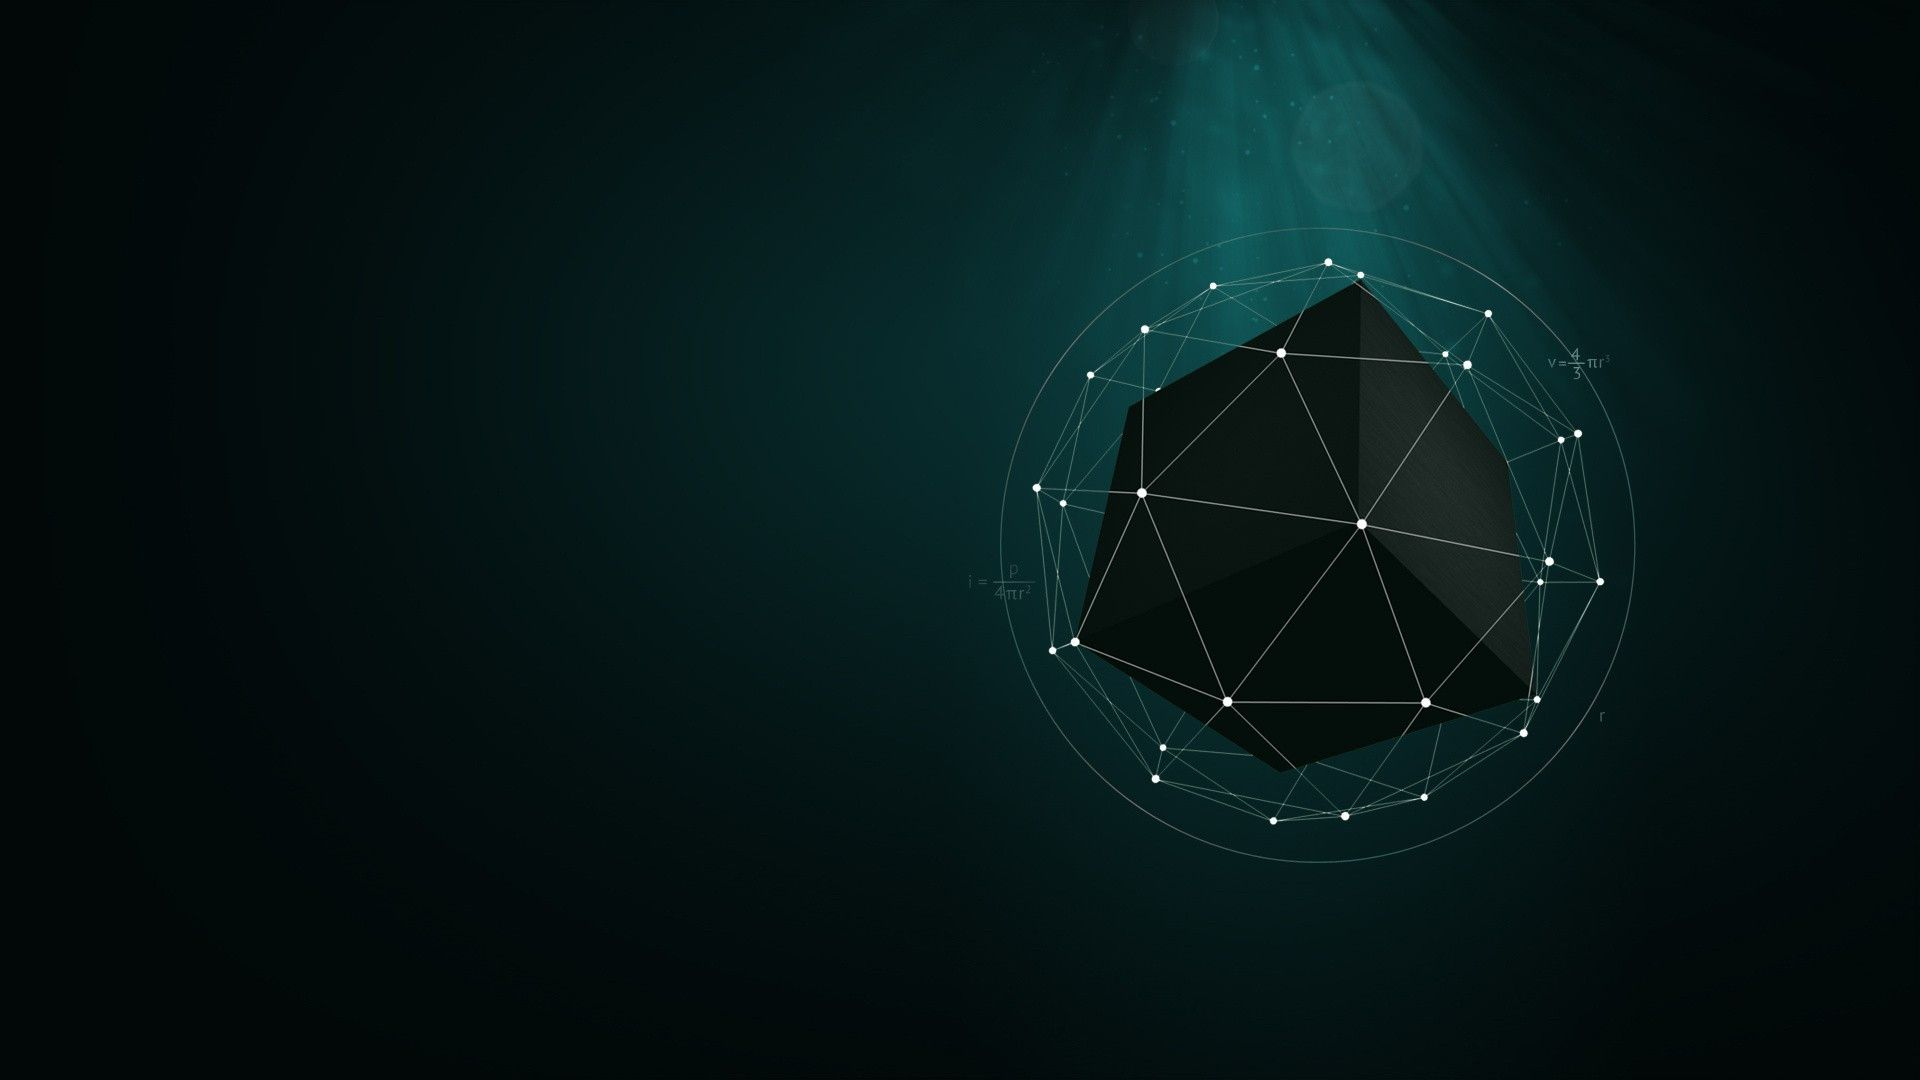 1920x1080 Cool-Math-Wallpapers-PIC-WPXH637941 - xshyfc.com